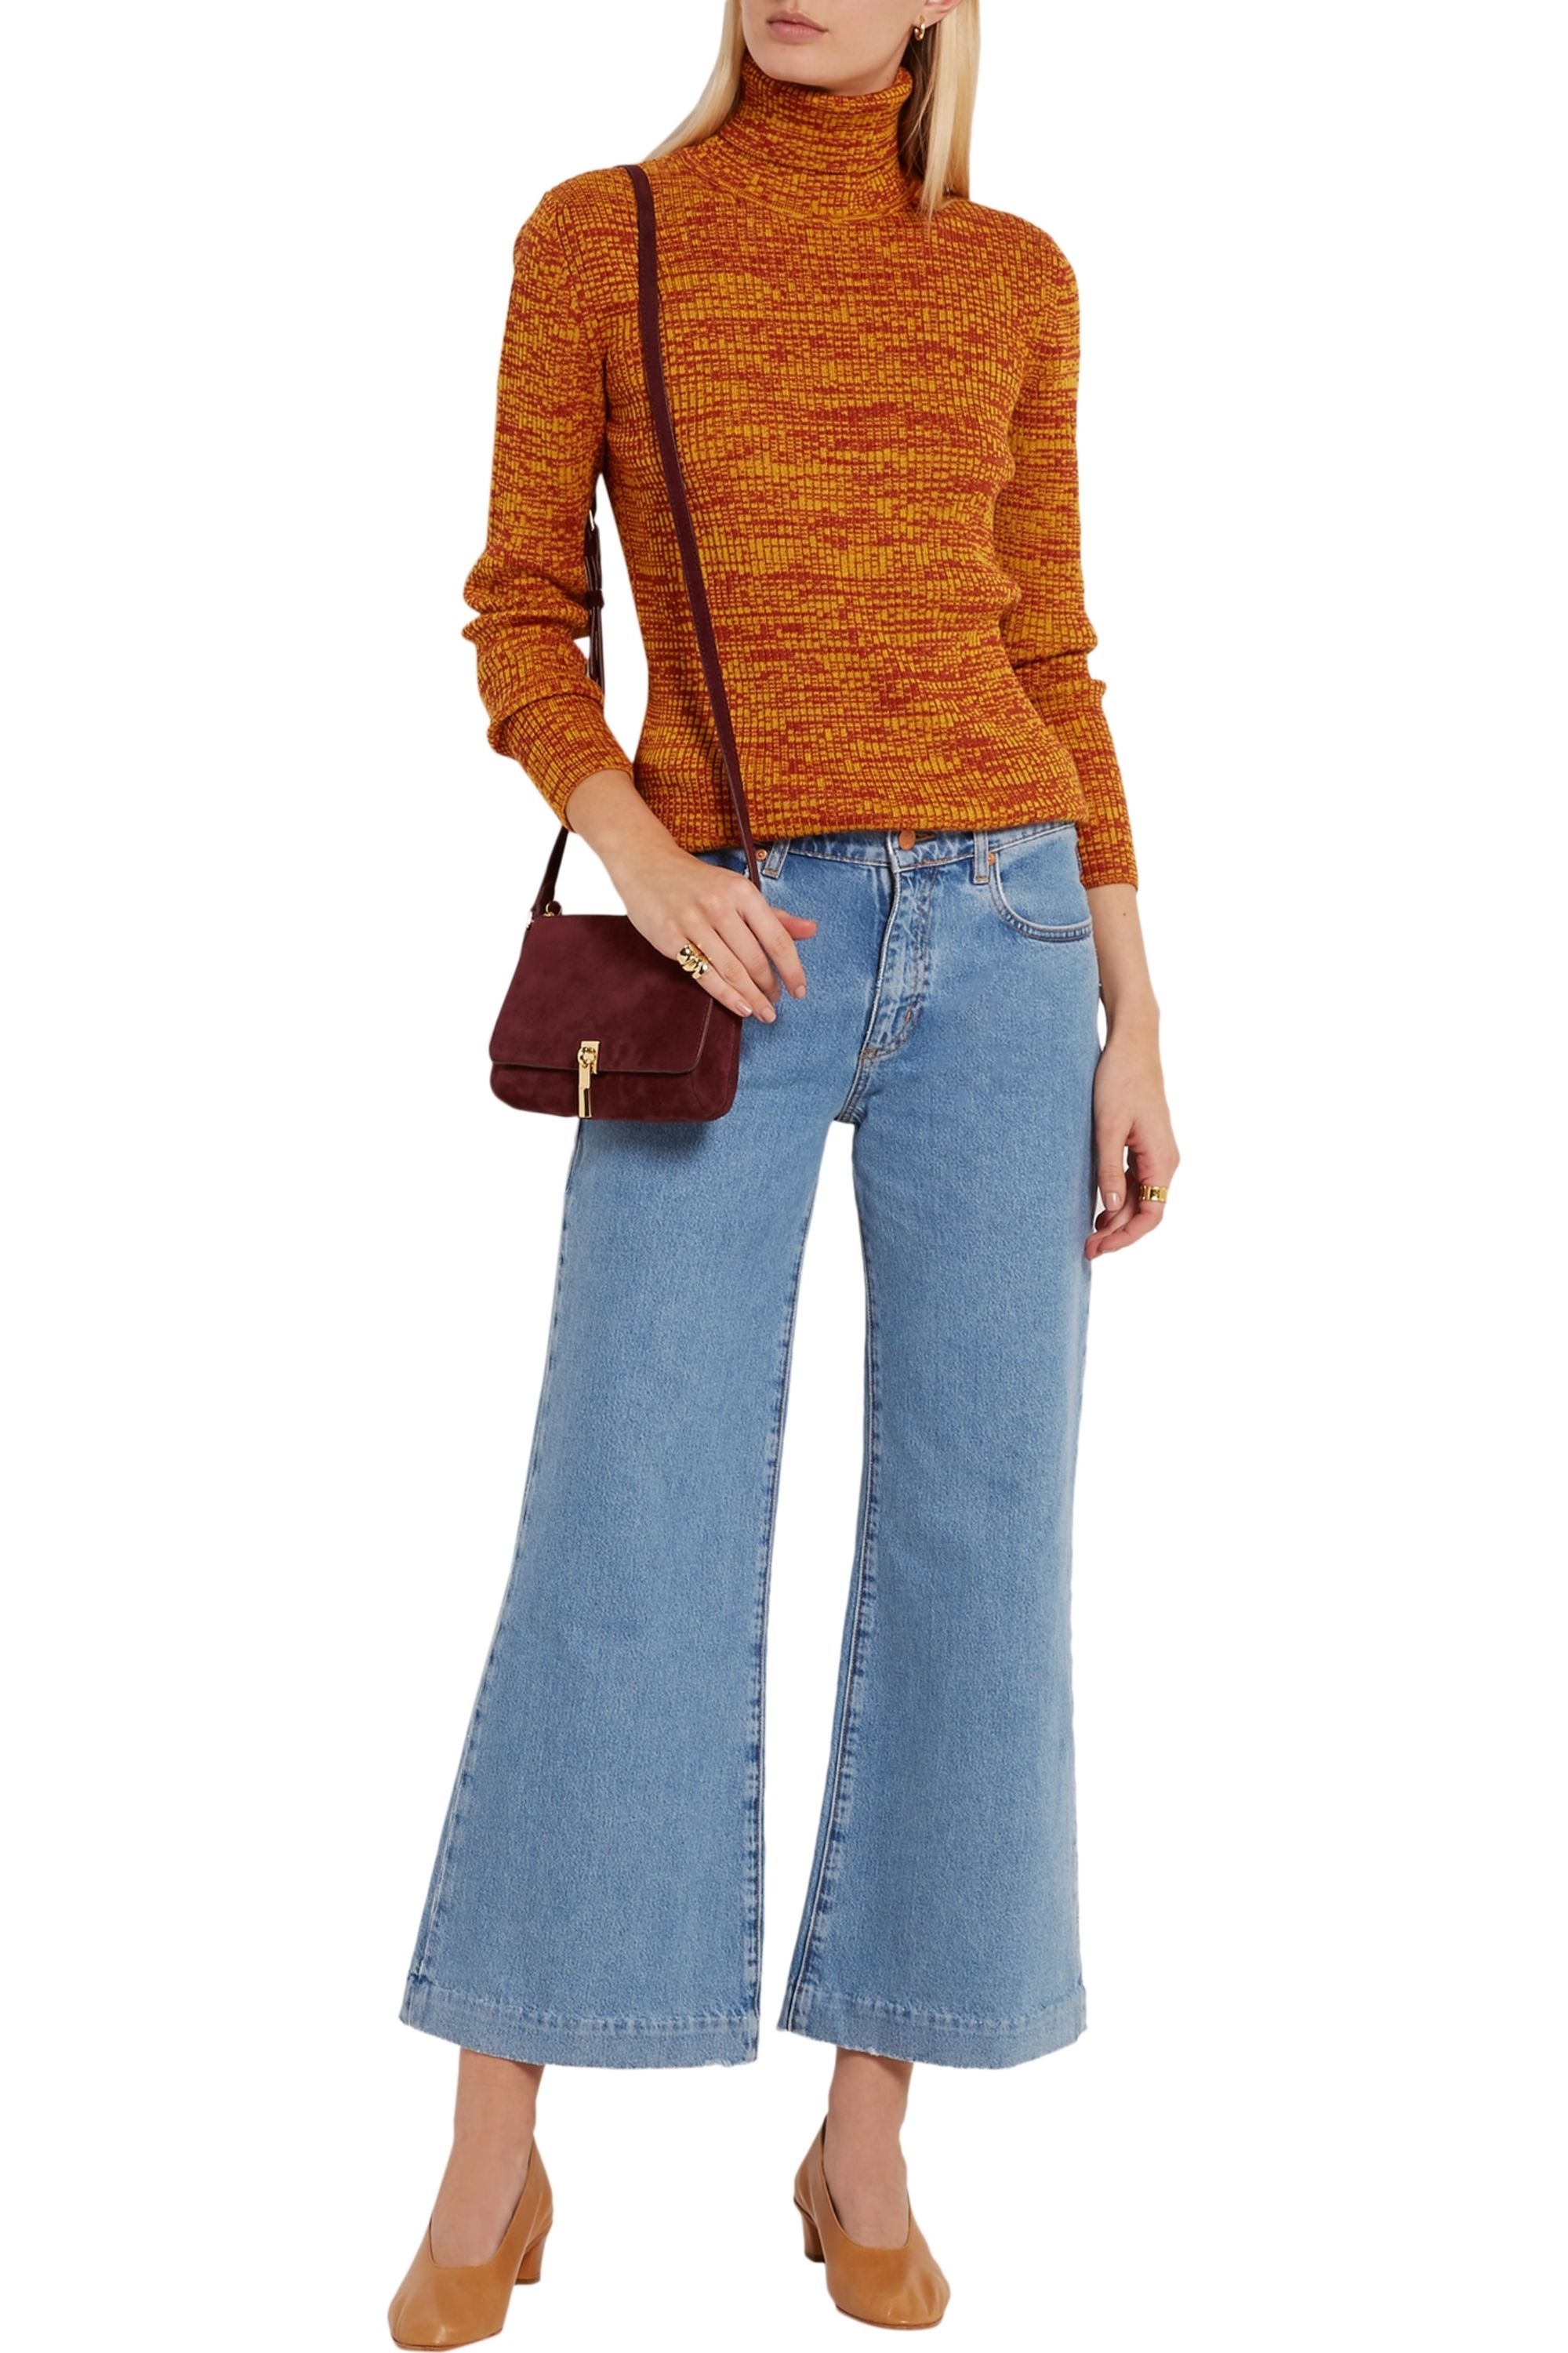 Elizabeth and James Cynnie suede shoulder bag